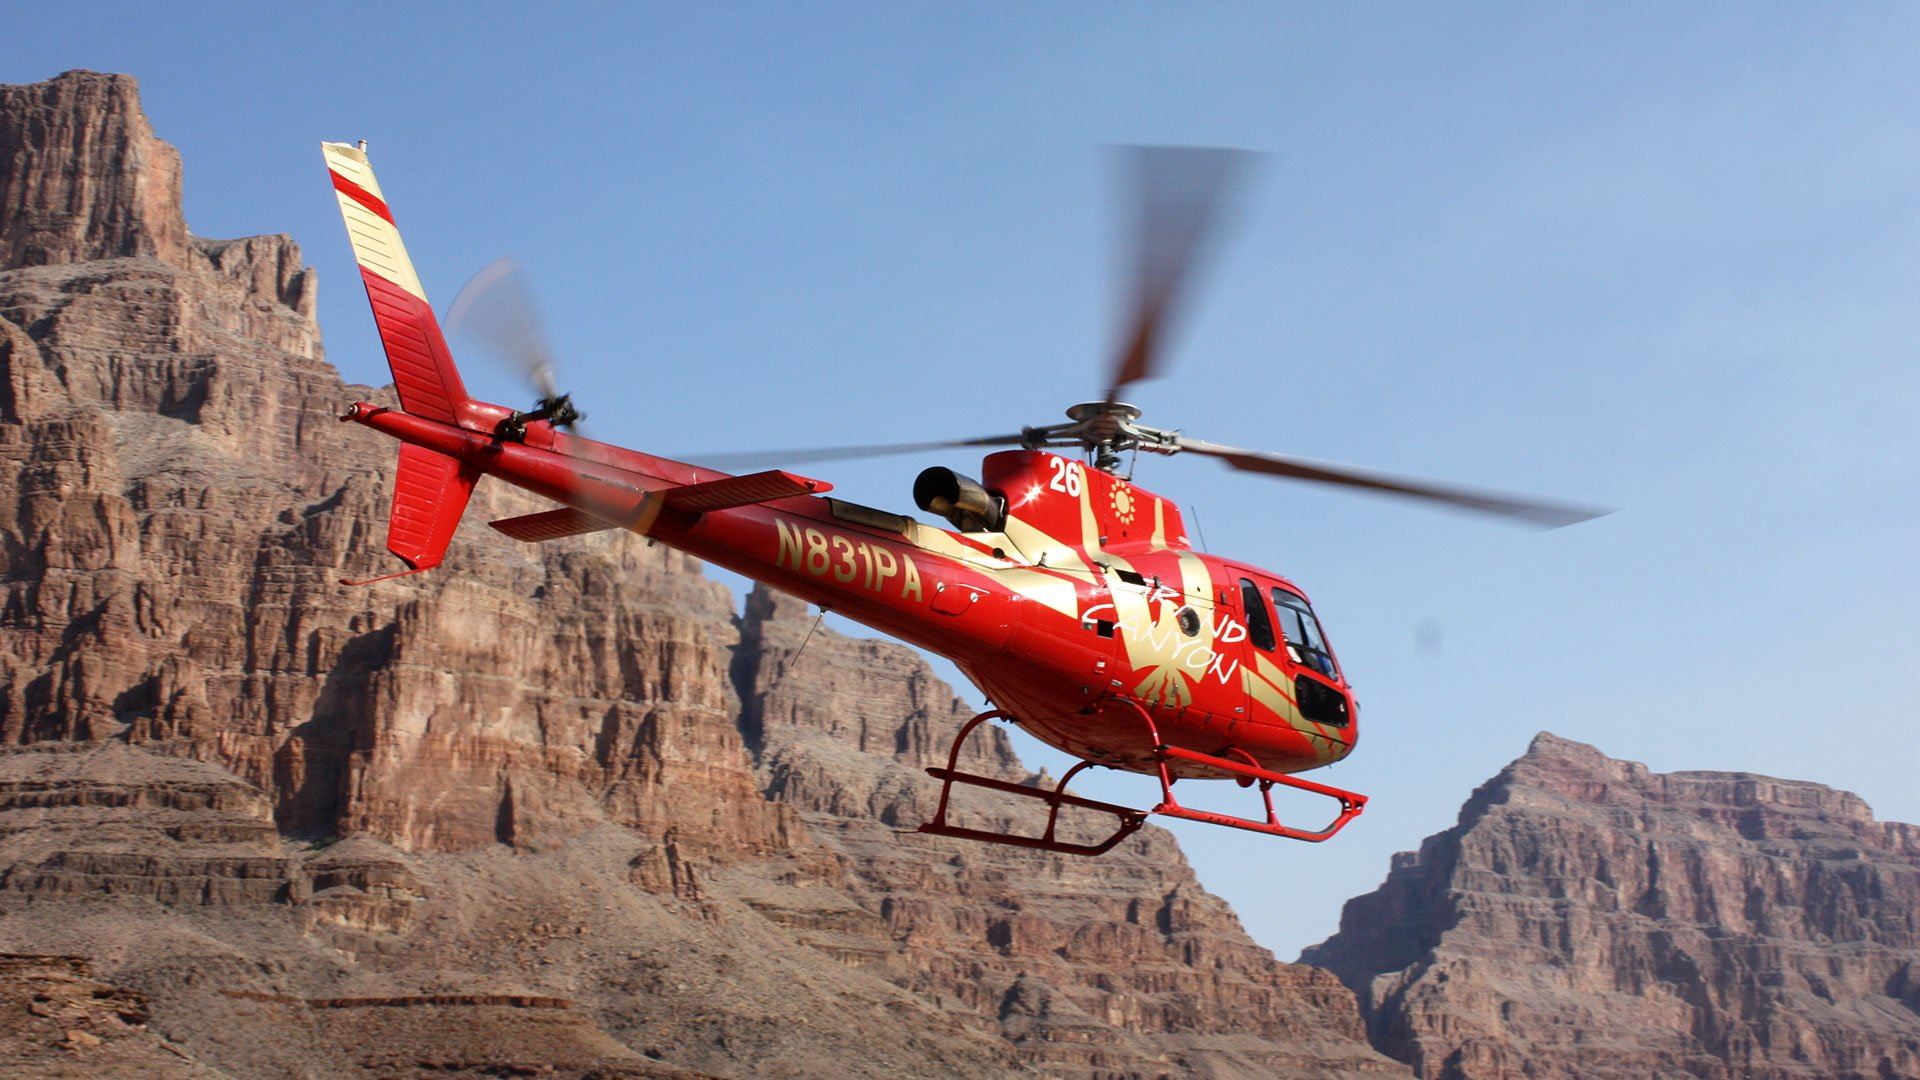 Red EC-130 helicopter flying through the Grand Canyon